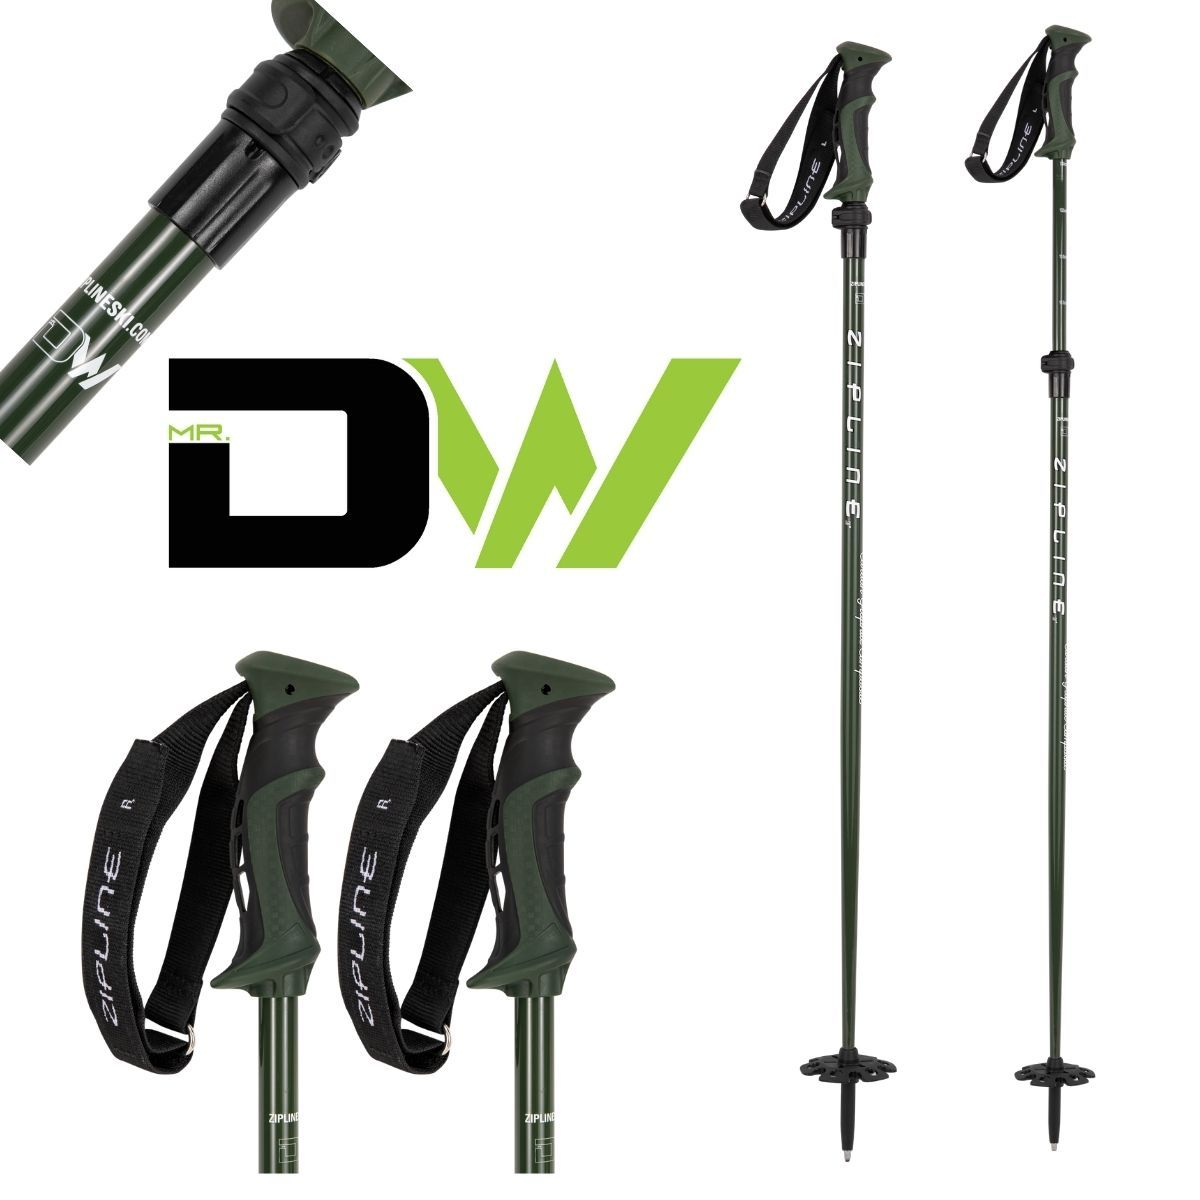 MRDW Collection - Zipline Blurr EXT - Adjustable Graphite Composite Ski Pole Ski Poles ZiplineSki Military Green